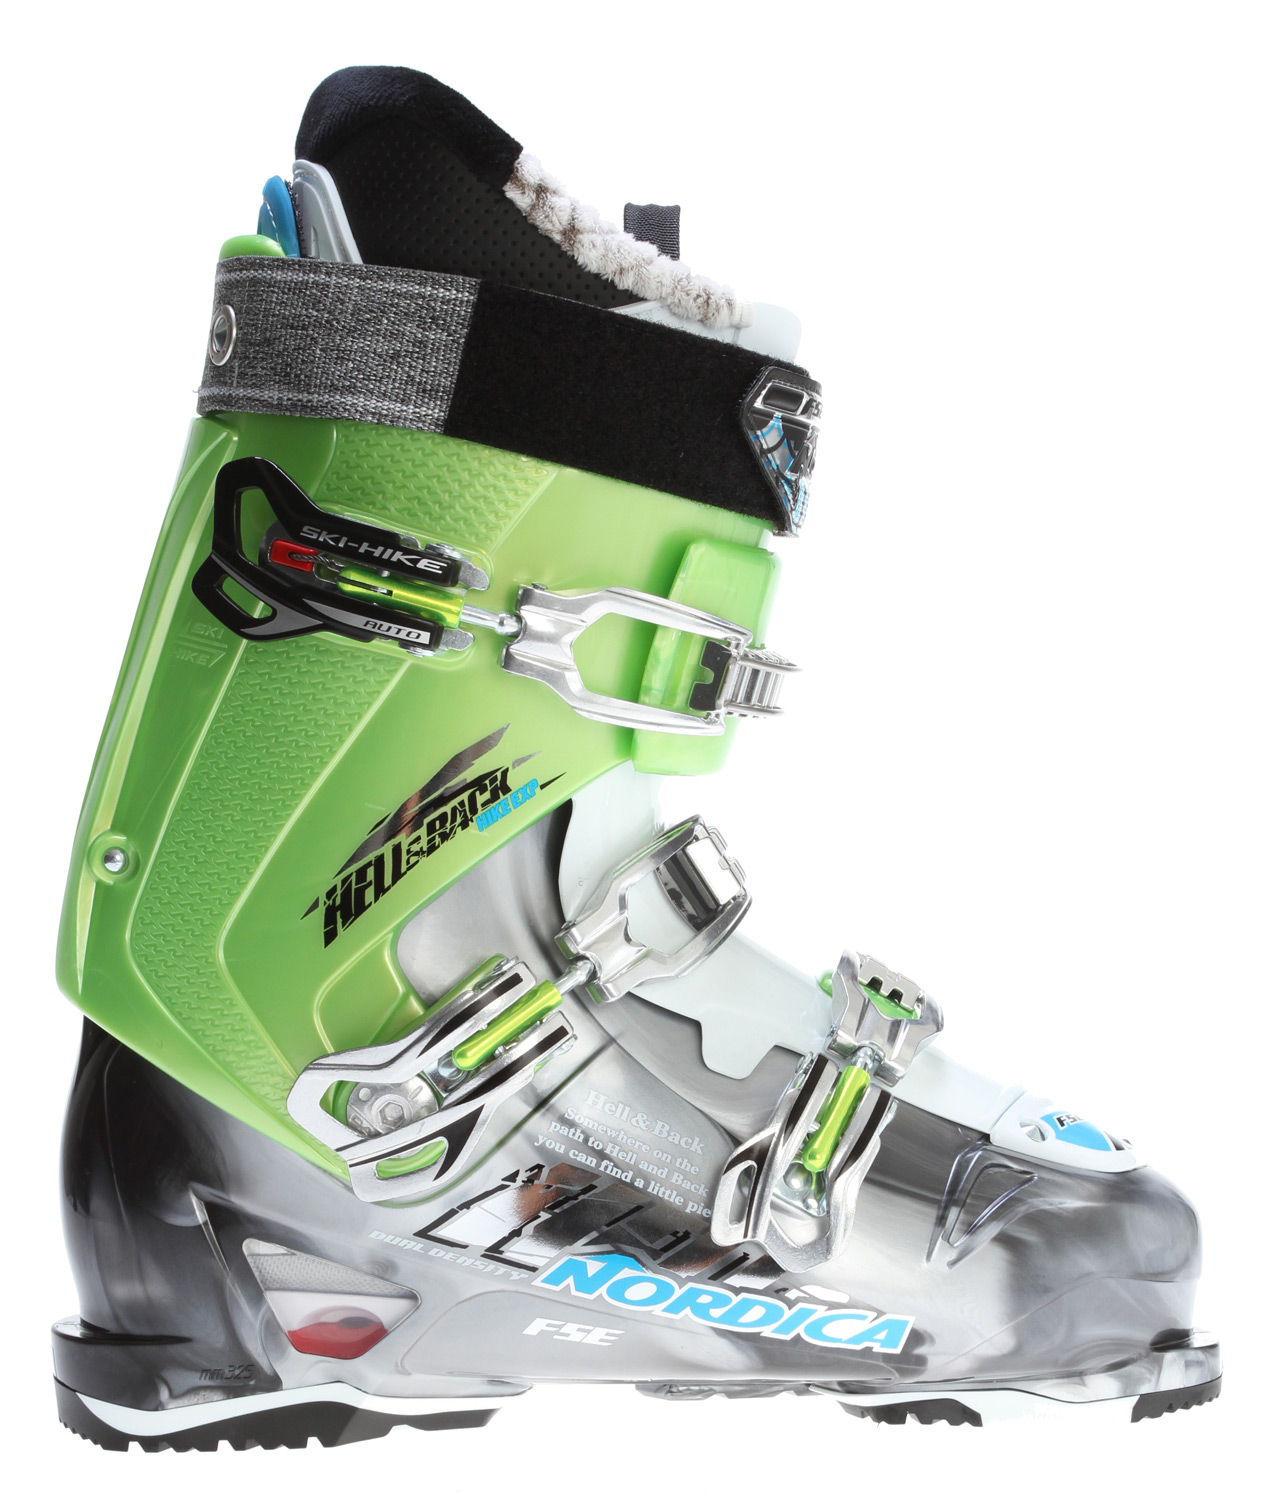 Ski Key Features of the Nordica Hell & Back Hike Exp Ski Boots: TRIAX Ultra Light Polymer Hike and Ride Technology 45 Degree Instep Retention Progressive Flex with Tongue Rebound Dual-Density Full Shock Eraser PFP Comfort Liner 3 Piece Easy-Entry Shell Construction High Traction Rubber Toe and Heel - $490.95